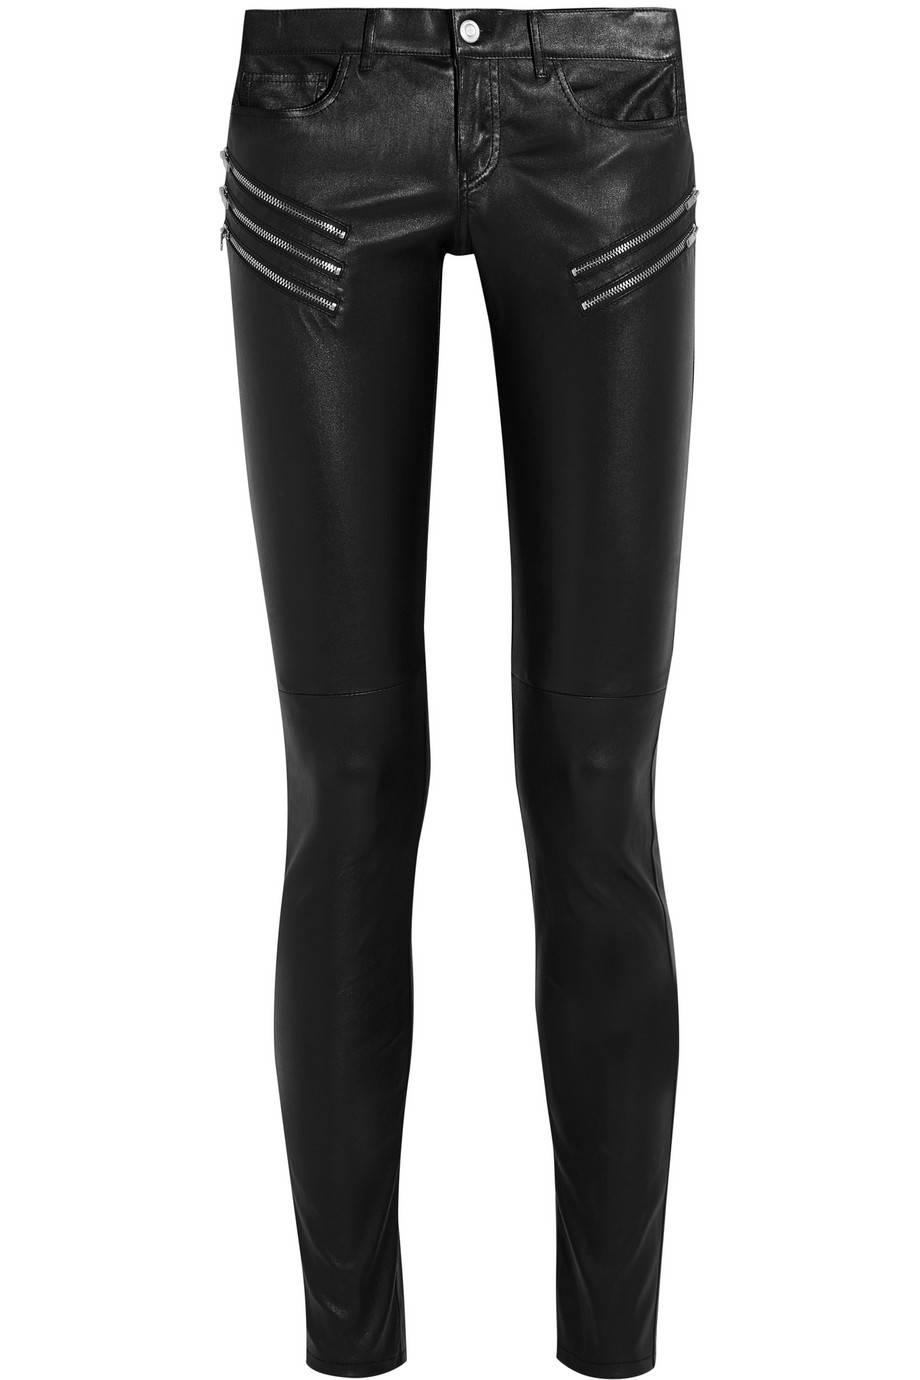 Saint Laurent Leather Skinny Pants, Black, Women's, Size: 42